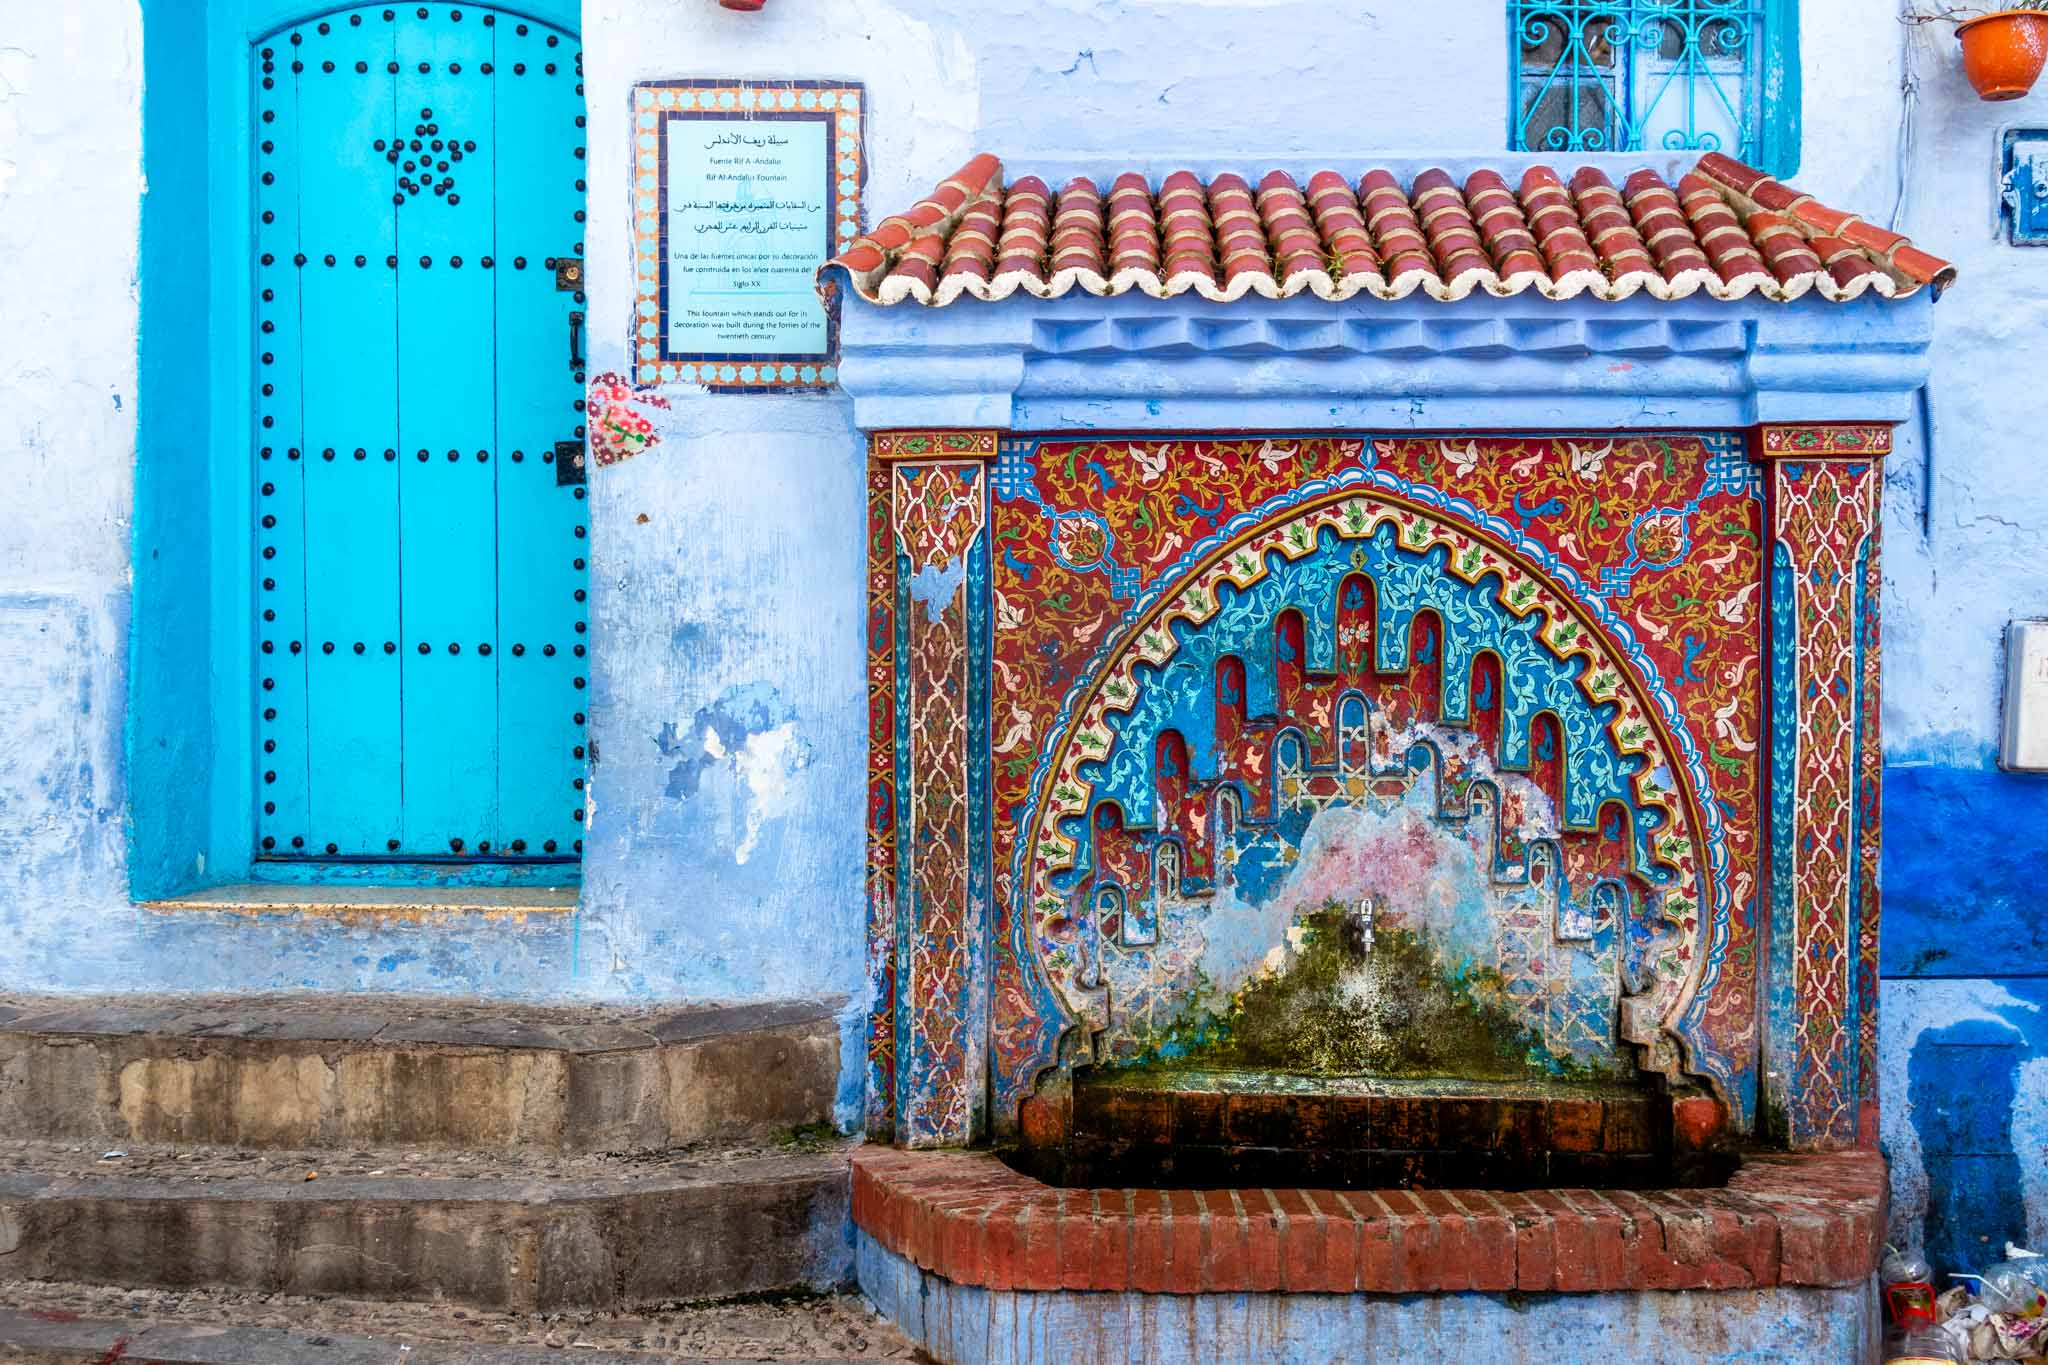 Red and blue decorated fountain next to a turquoise door